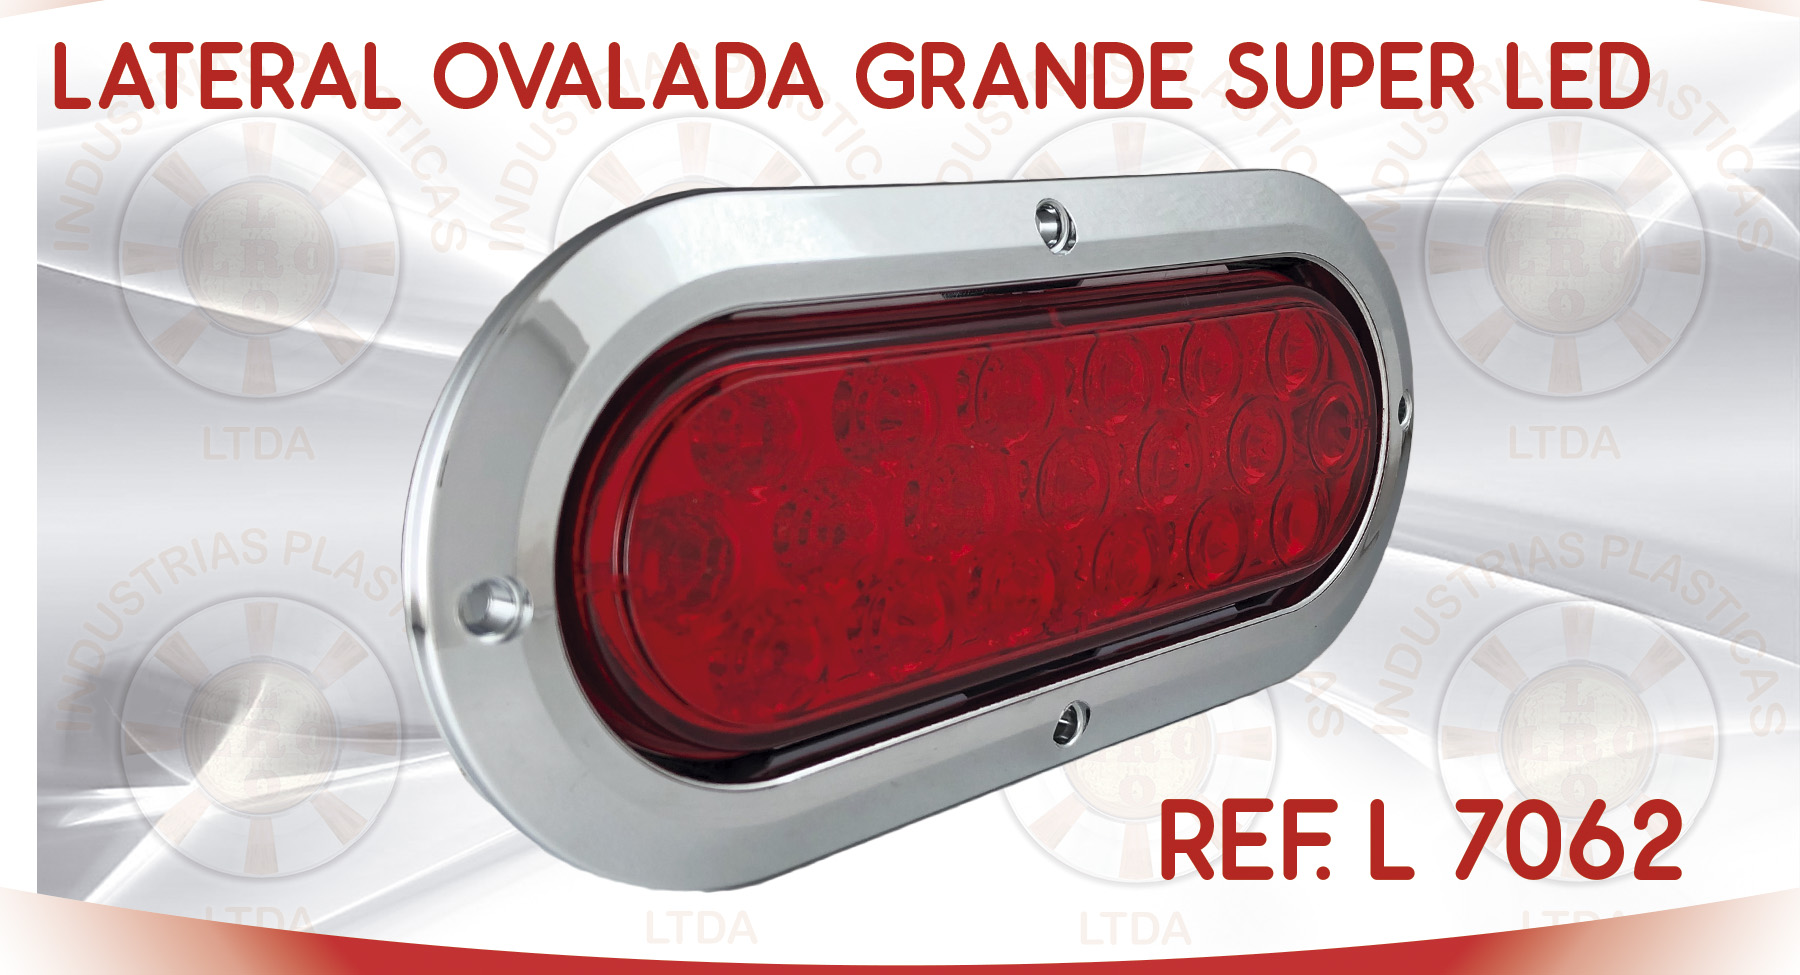 L 7062 LATERAL OVALADA GRANDE SUPER LED